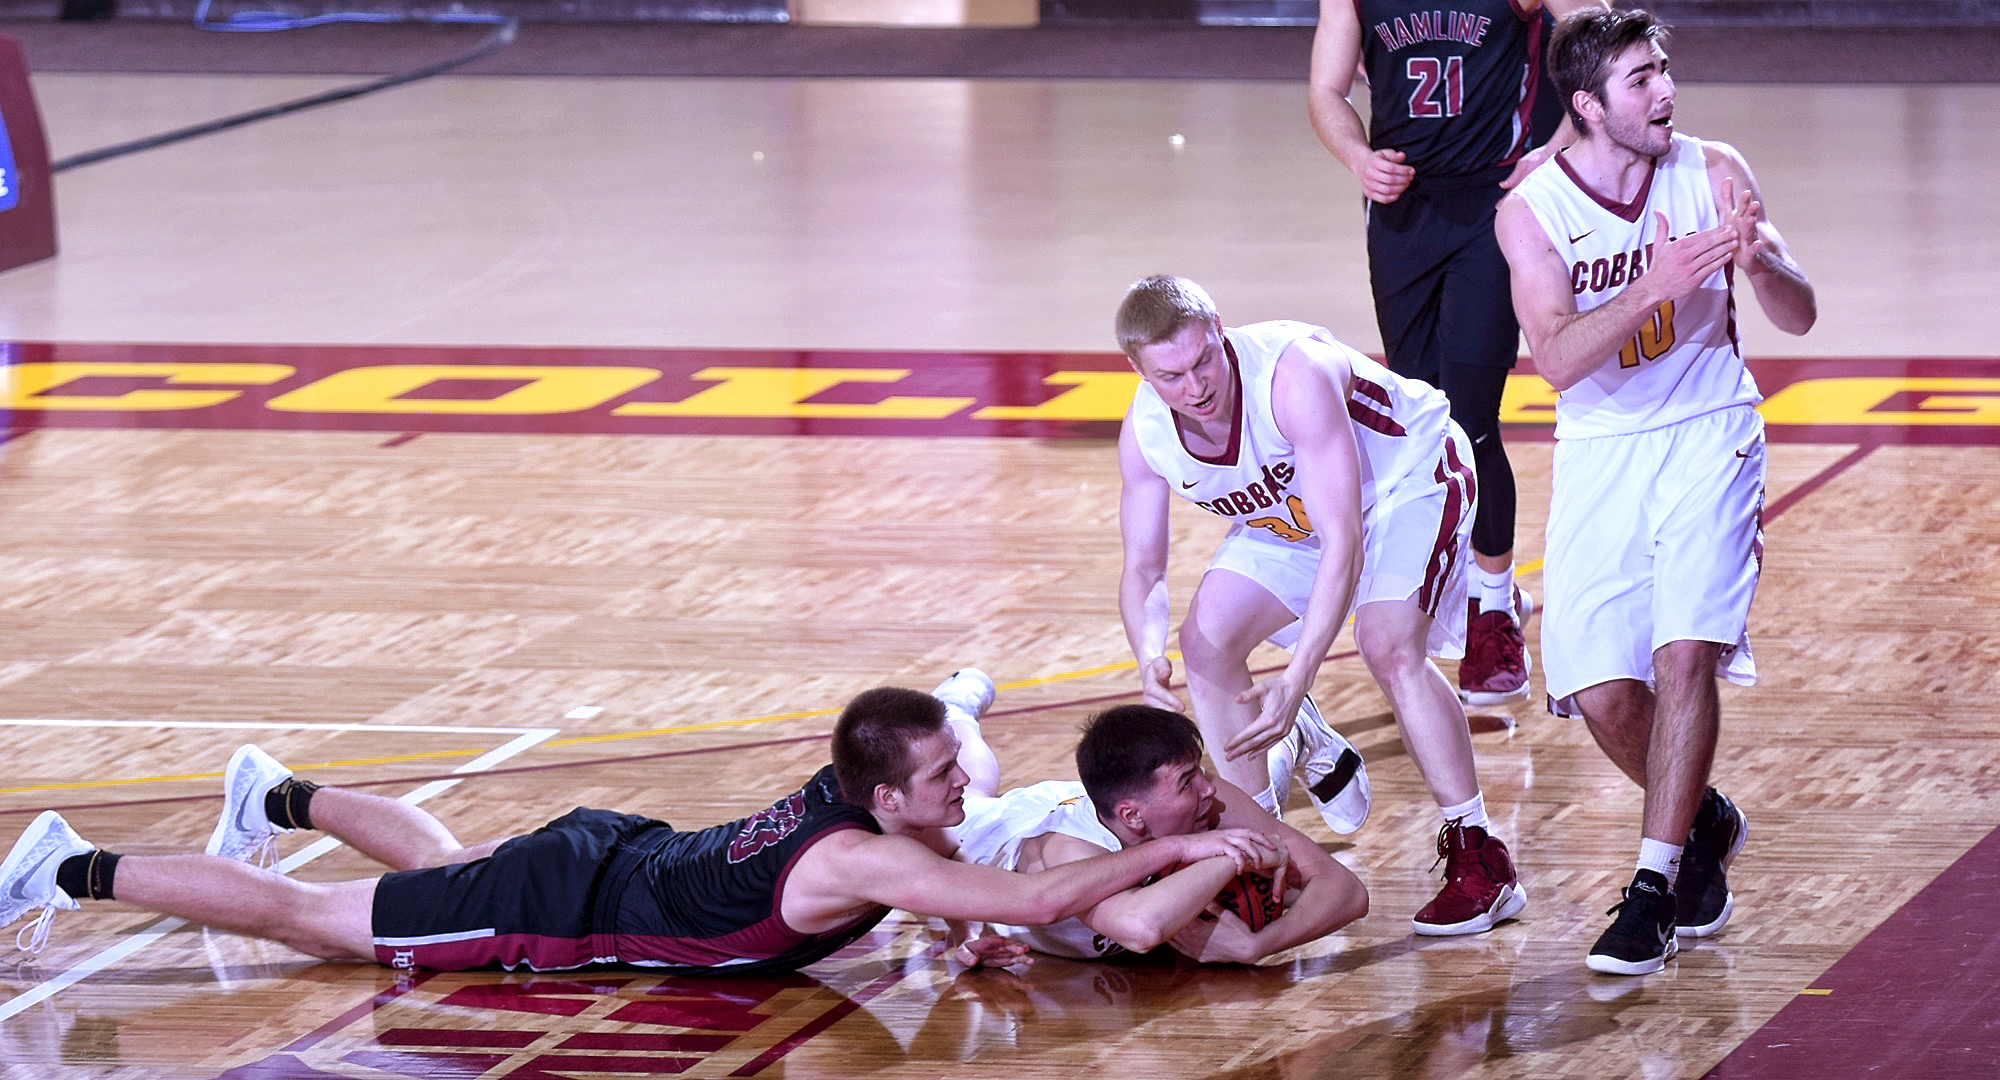 Senior Jordan Davis dives on the floor to grab the ball as teammate Tommy Schyma calls for timeout late in the second half of the Cobbers' 68-62 win over Hamline.